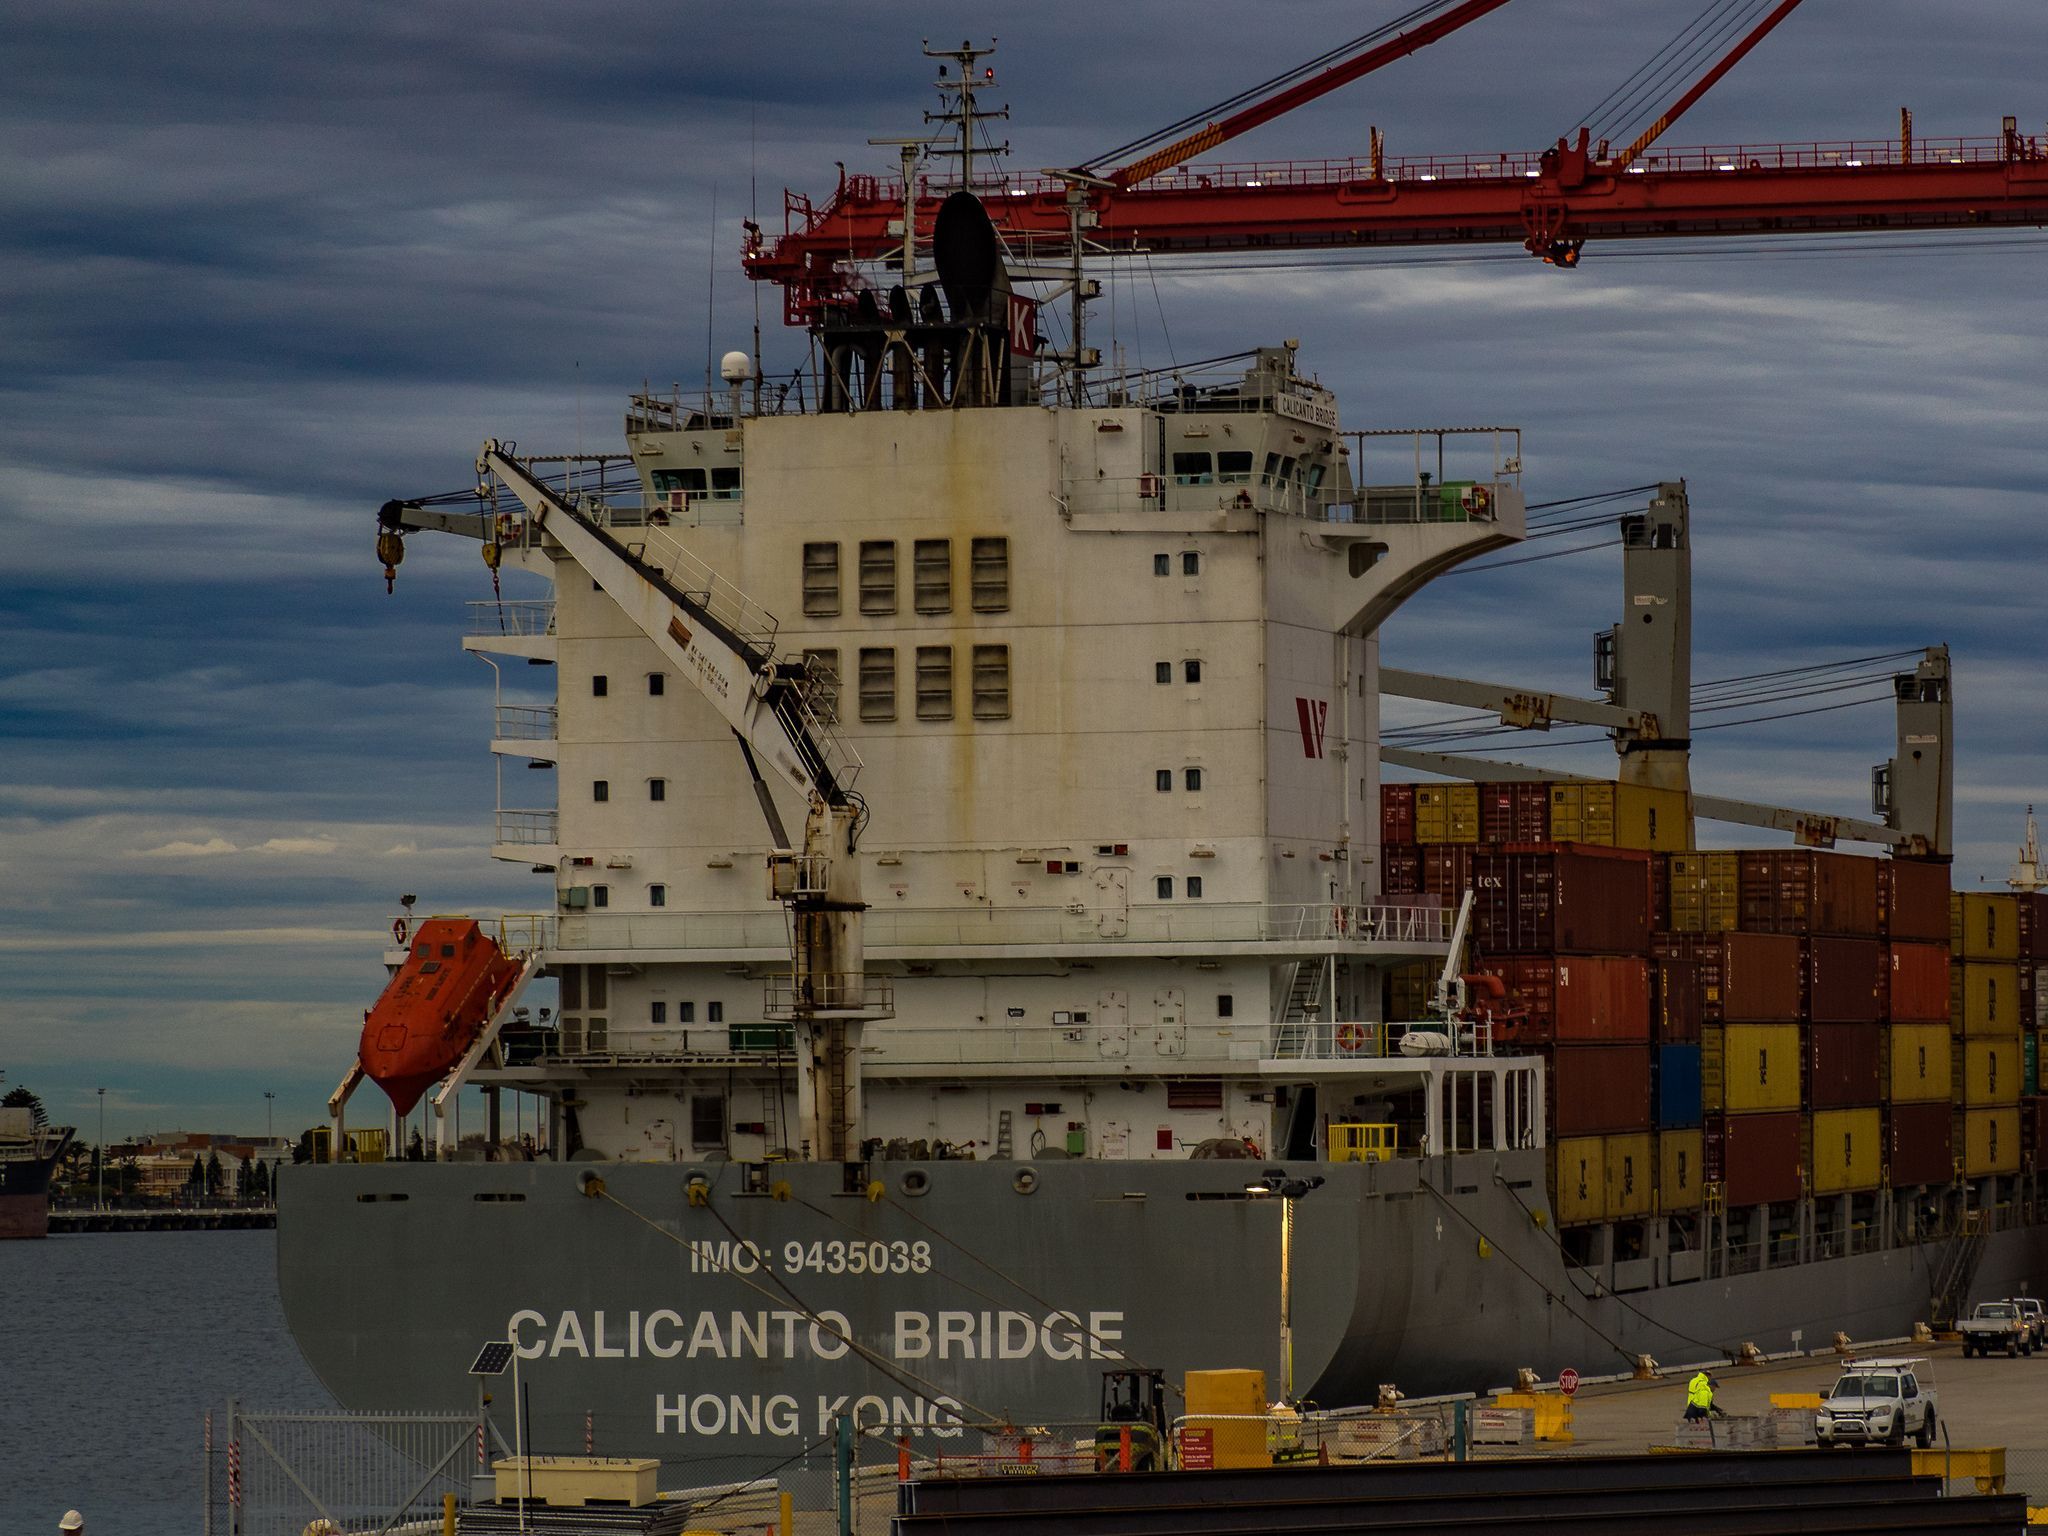 https://flic.kr/p/vbHvPp   Calicanto Bridge   The Chinese owned, Japanese managed container ship, Calicanto Bridge [IMO 9435038] alongside the Patrick Stevedores operated No. 10 NQ berth, Fremantle Port, Western Australia on July 2, 2015.  IMO number: 9435038 Name of ship: Calicanto Bridge Former names: None Call Sign: VRGT3 MMSI: 477748500 Gross Tonnage: 26,404 DWT: 34,195 Type of ship: Container Ship Built: 2010 Flag: Hong Kong, China Funnel Marks: Unknown Ship Manager: Kawasaki Kisen…